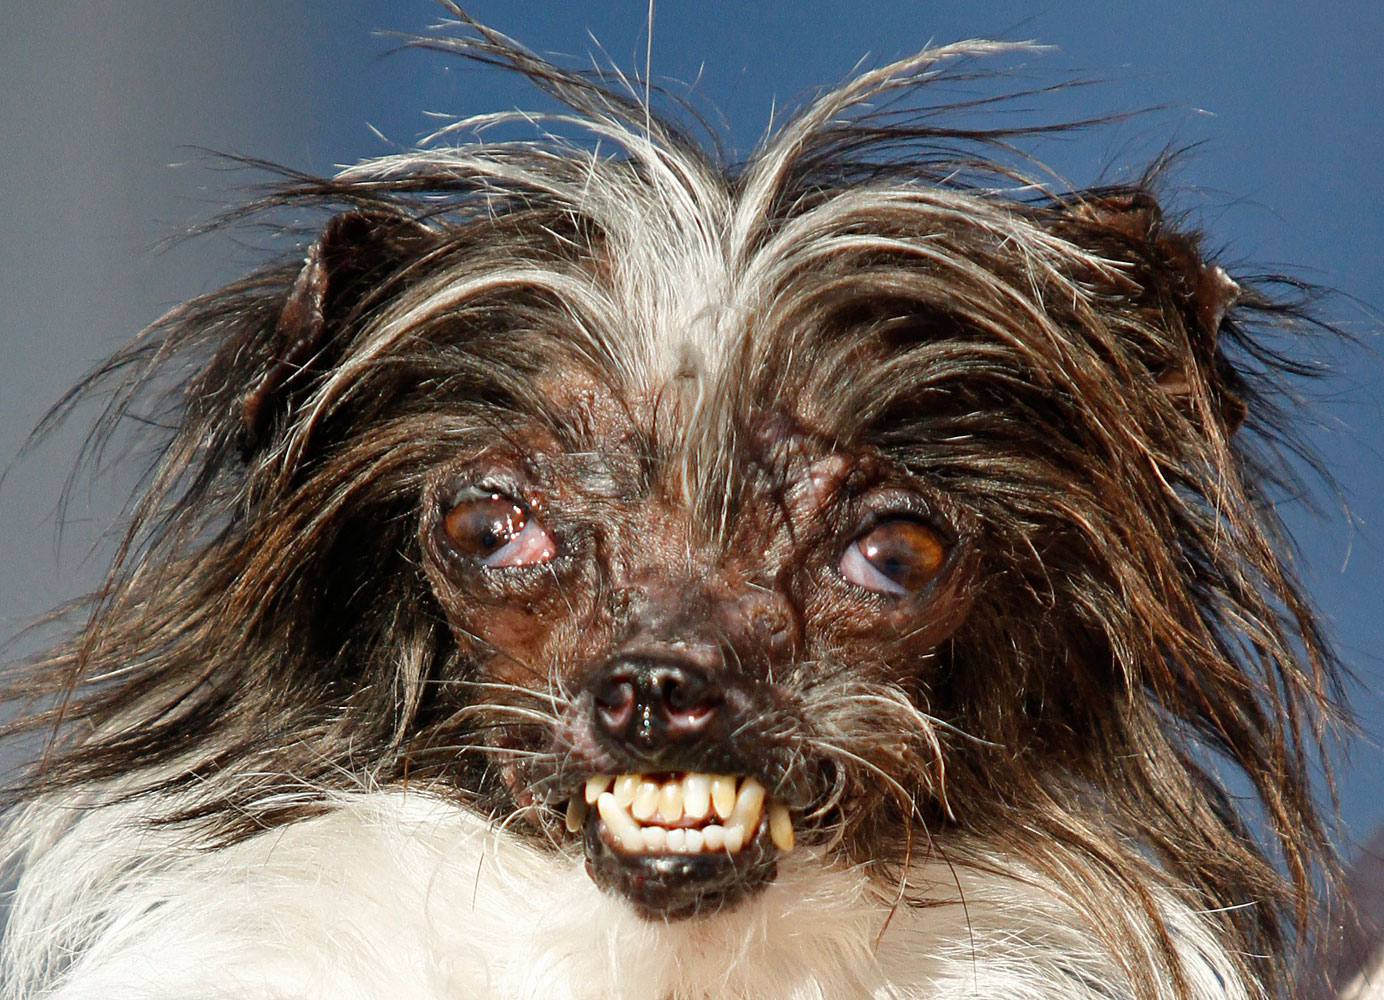 World's Ugliest Dog: A 2-Year-old Burn Victim Named Peanut | Time.com